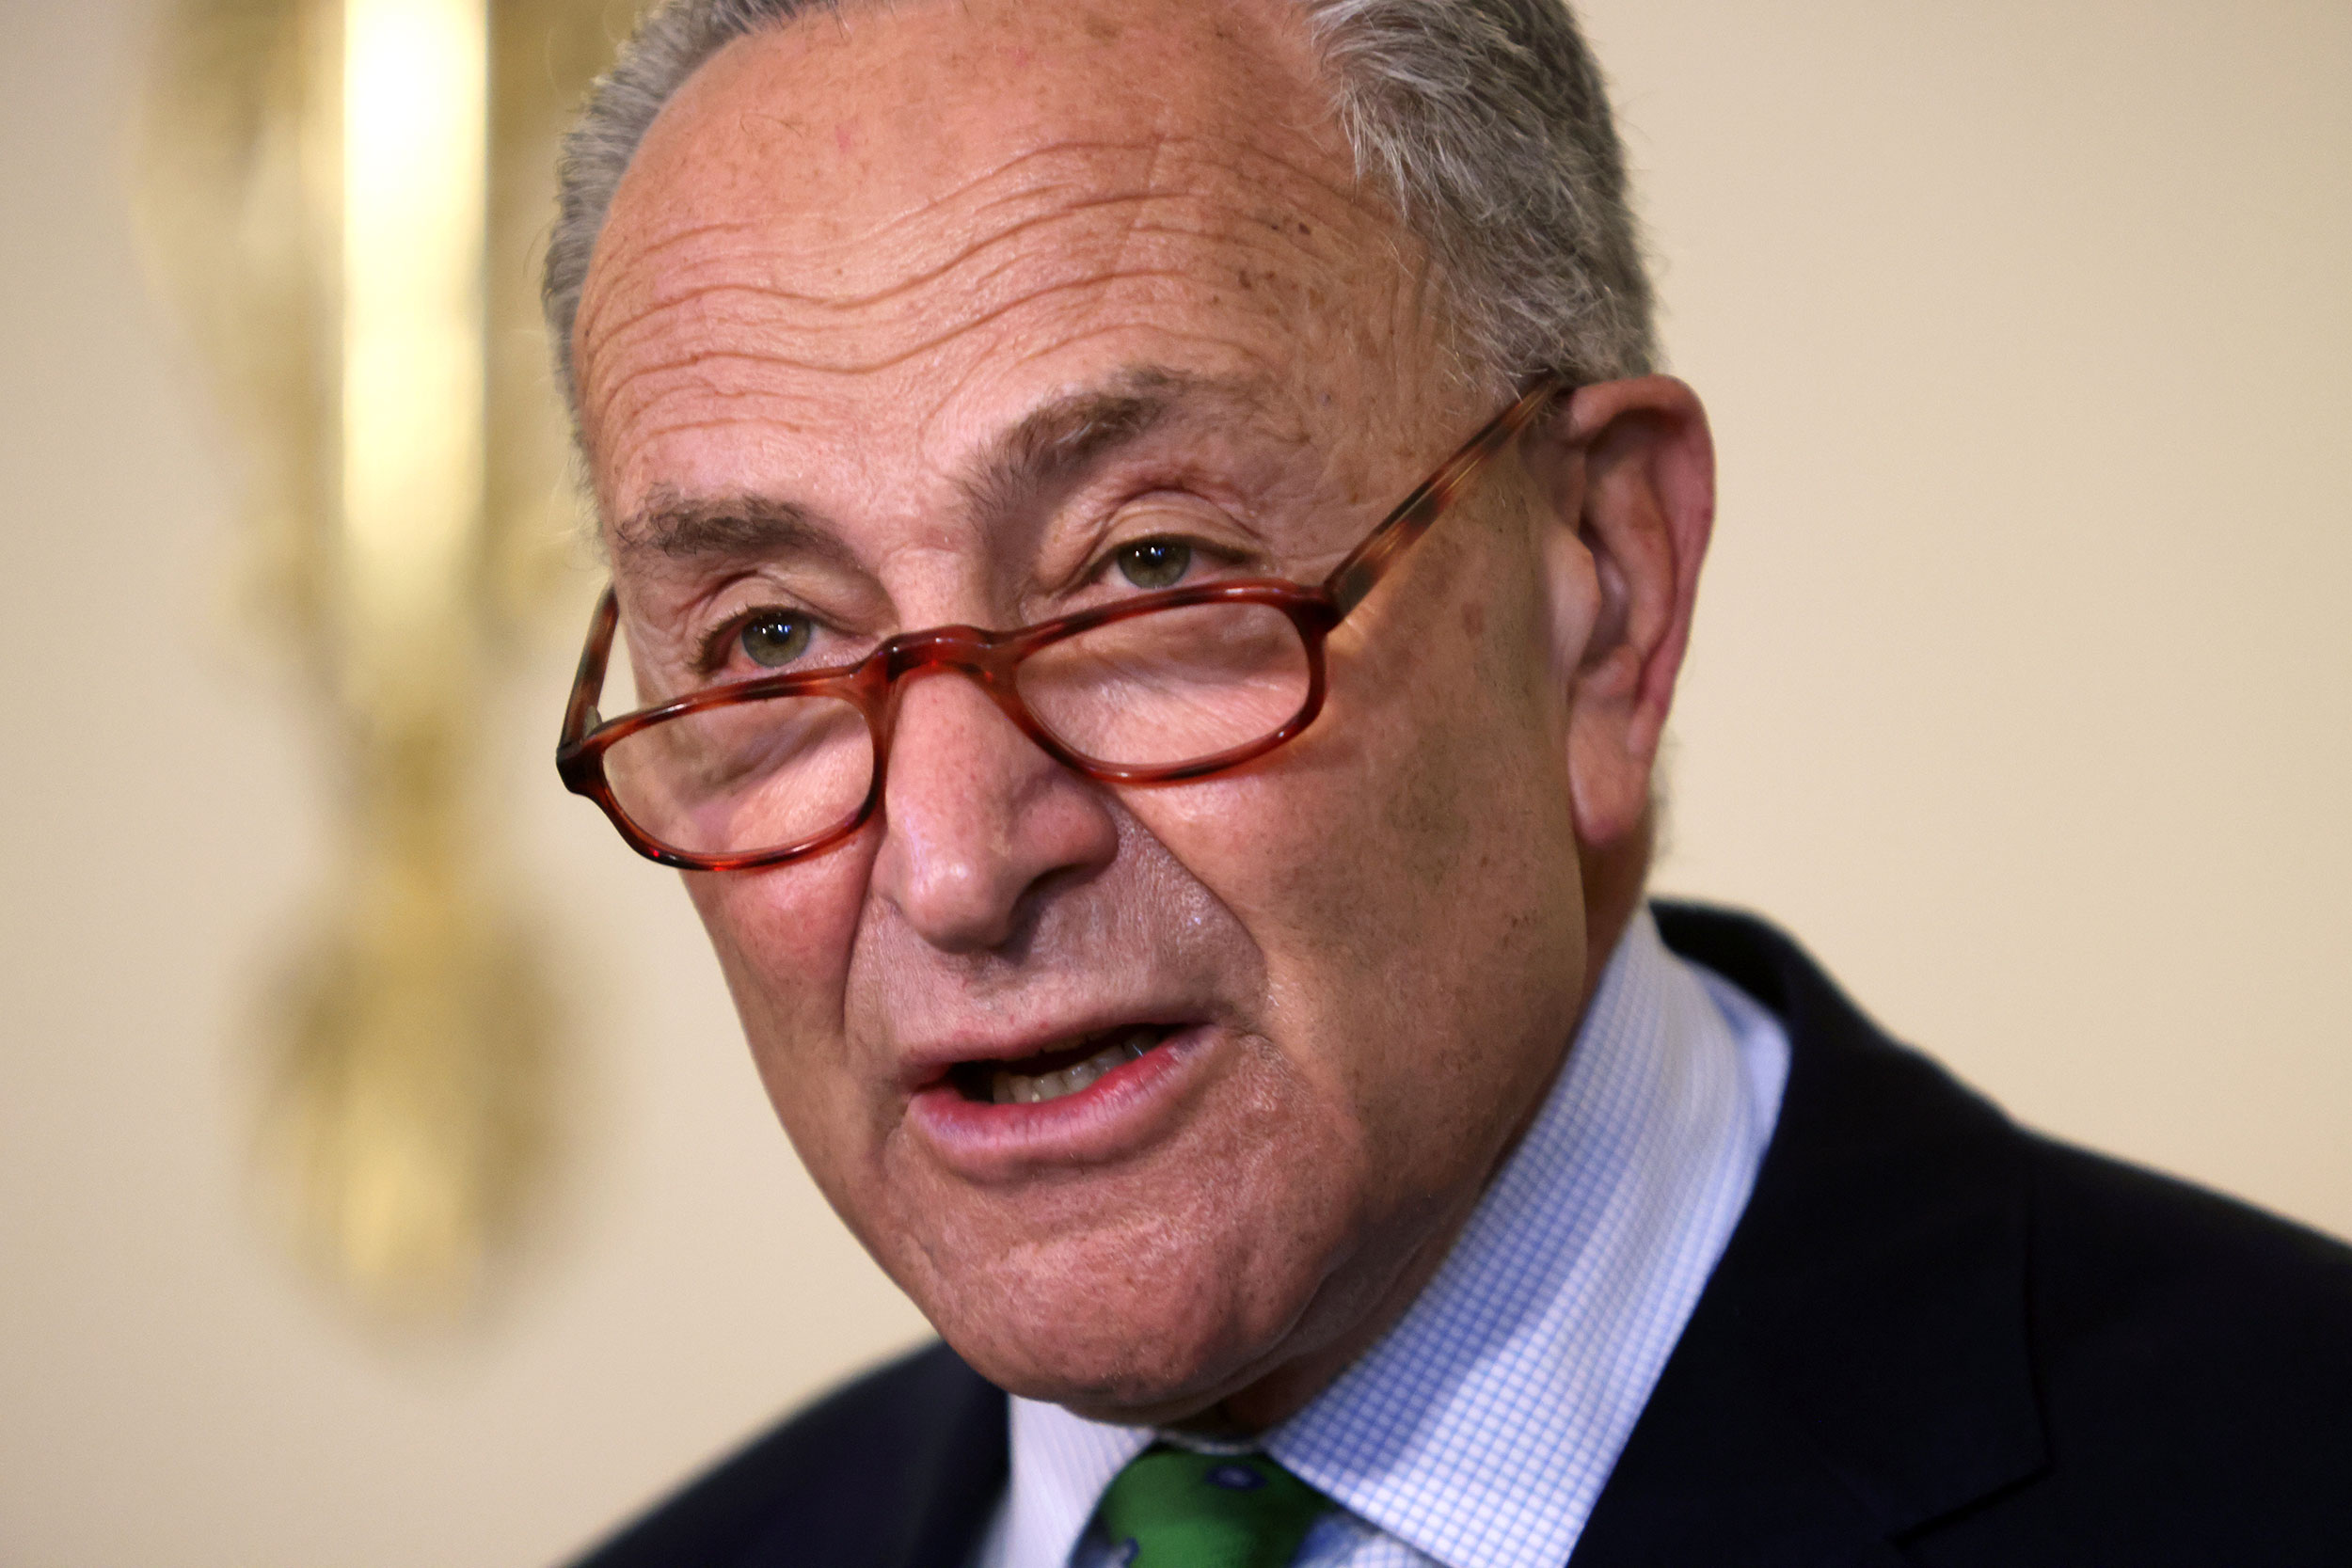 Senate Minority Leader Sen. Chuck Schumer speaks during a news conference September 10 on Capitol Hill in Washington, DC.